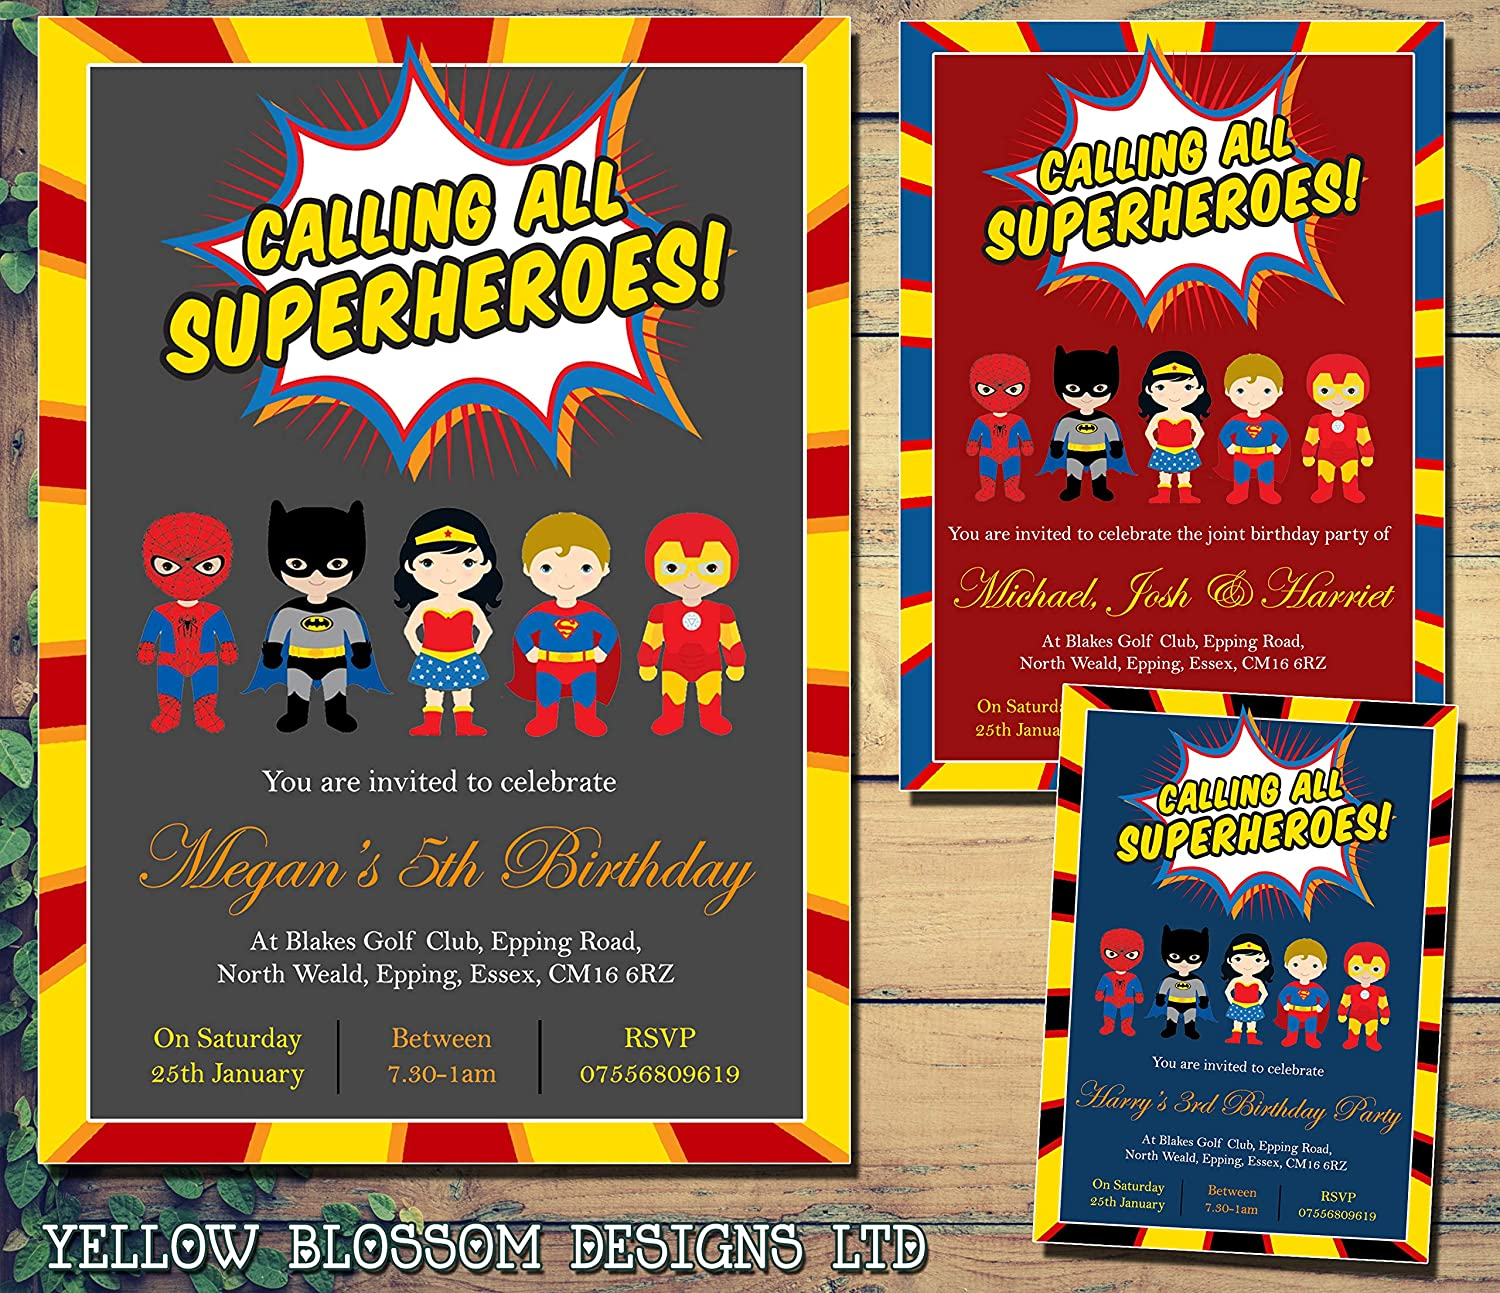 Personalised Calling All Superheros Childrens Birthday Invitations Printed Invites Boy Girl Joint Party Twins Unisex Photo Card Superhero Thank You Boys